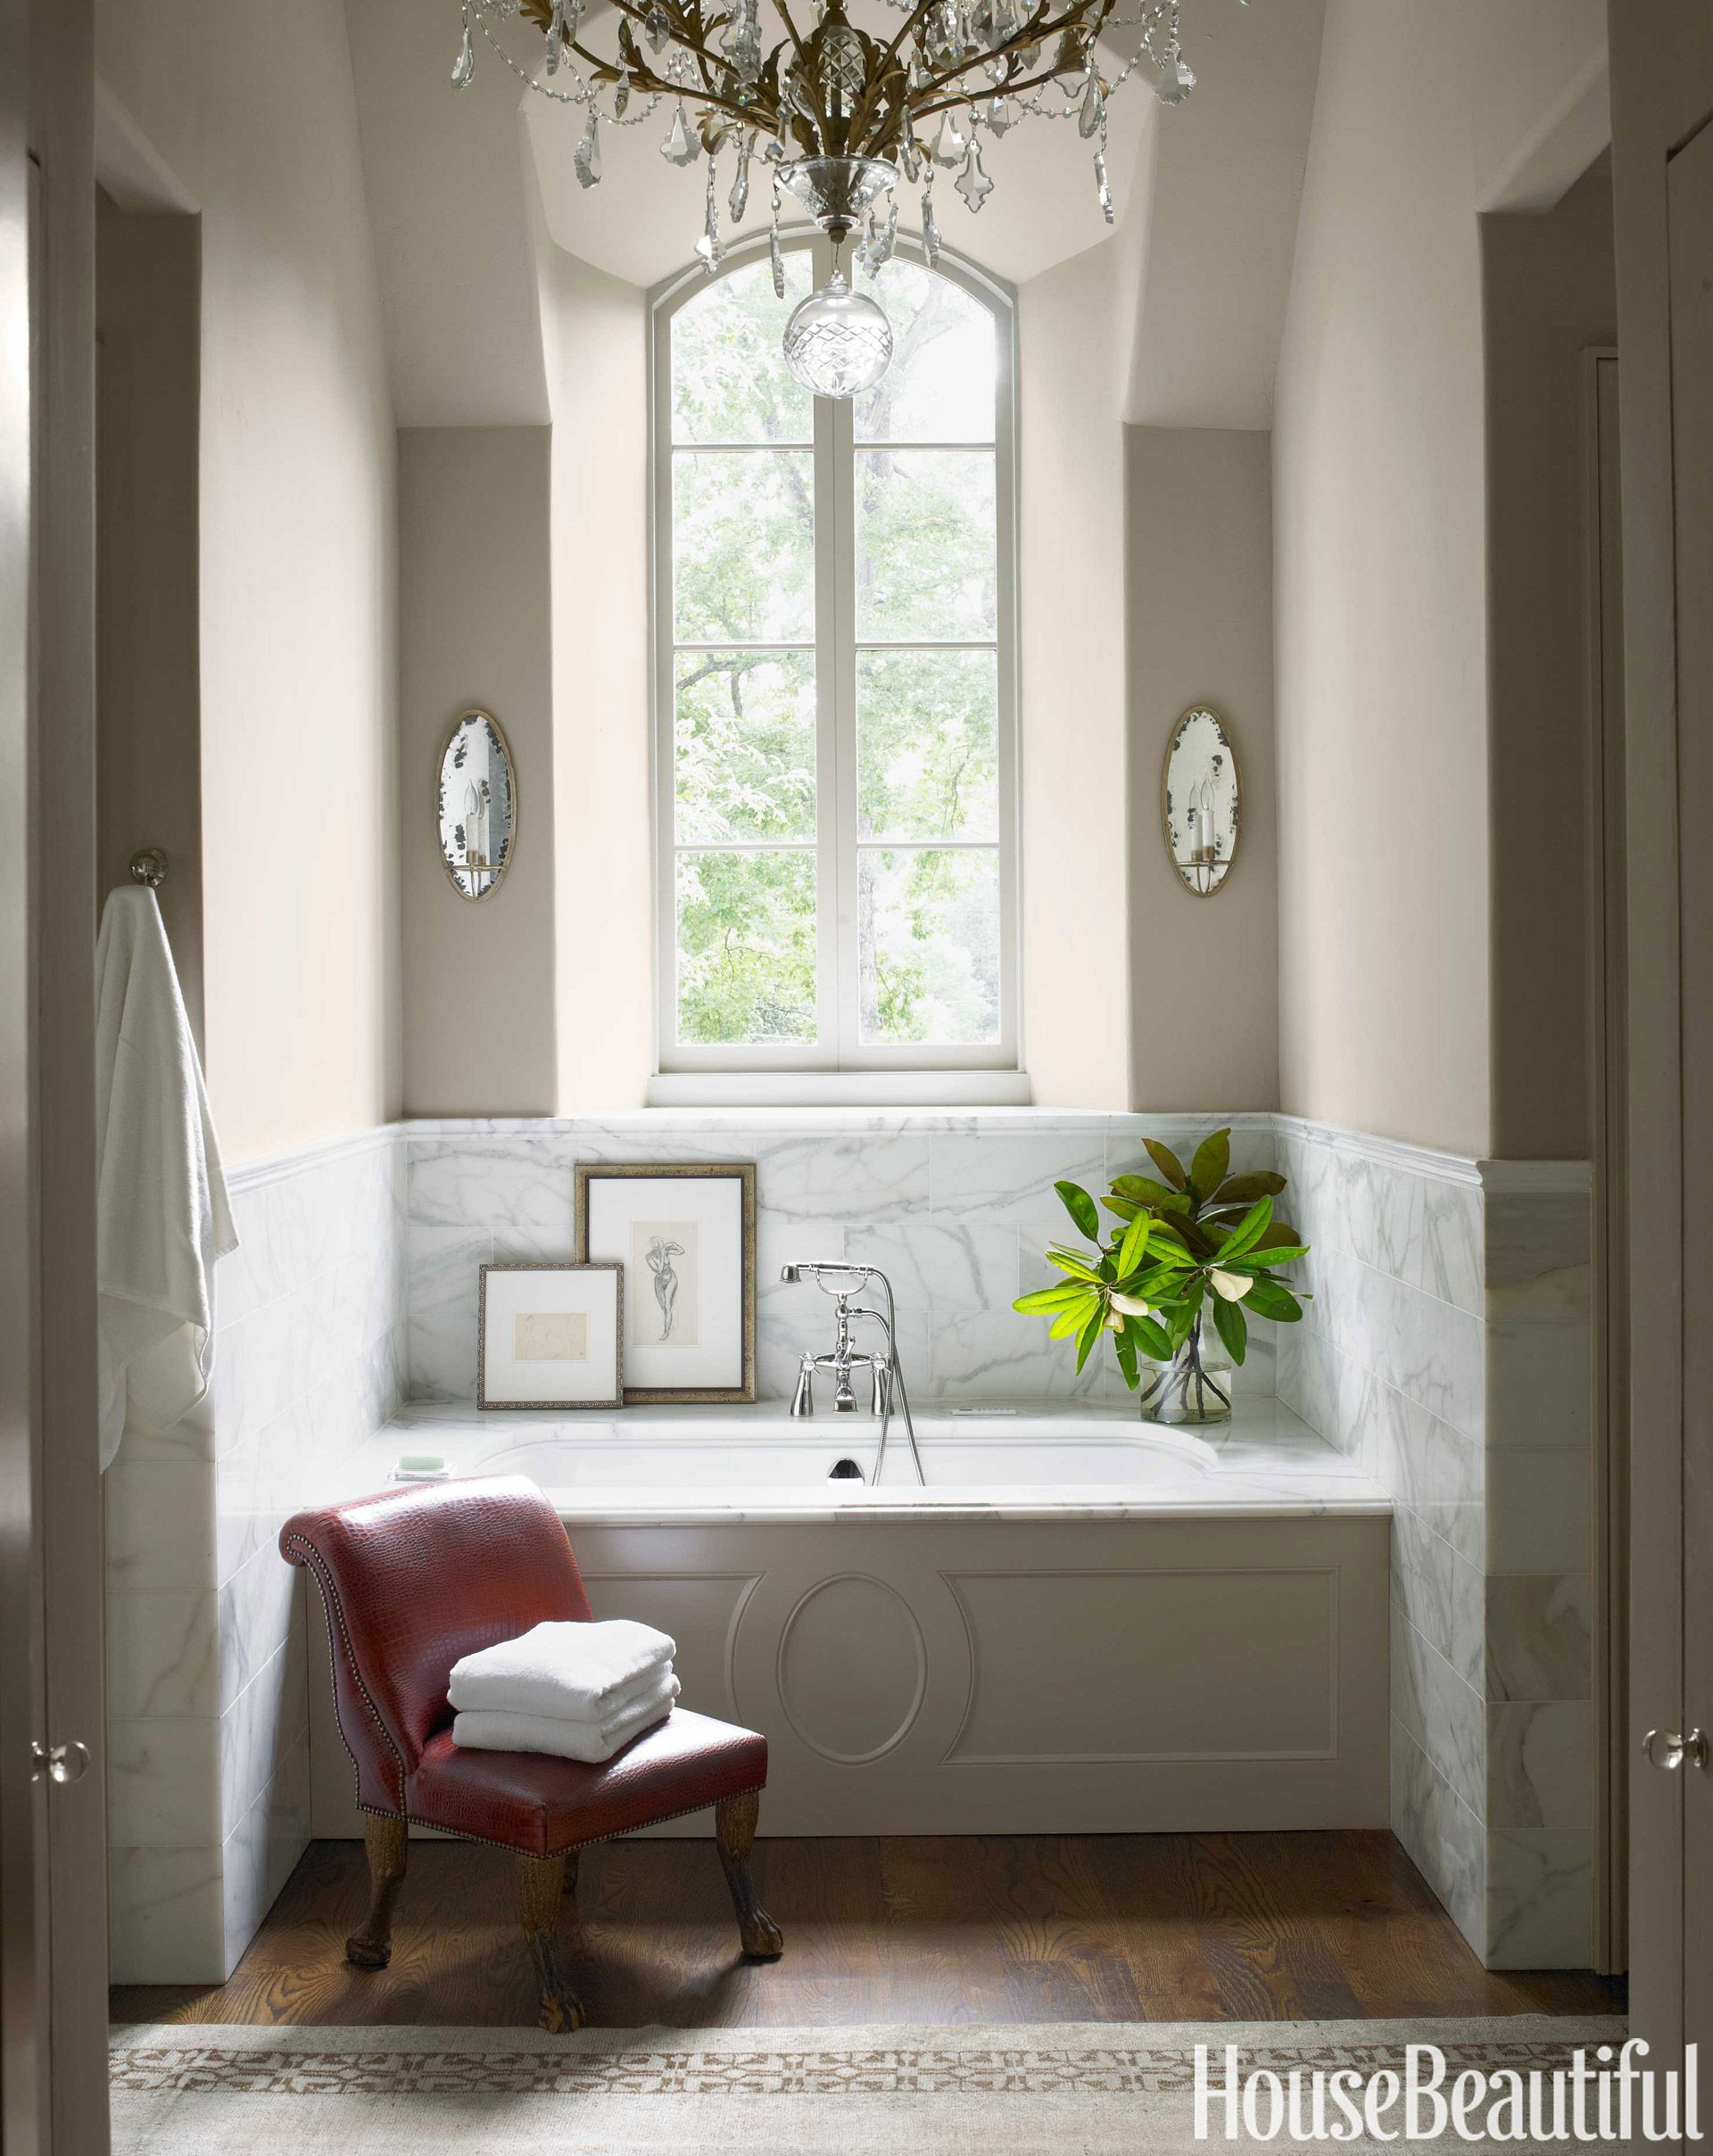 When Couples Clash on Decor | Tubs, Towels and Bath